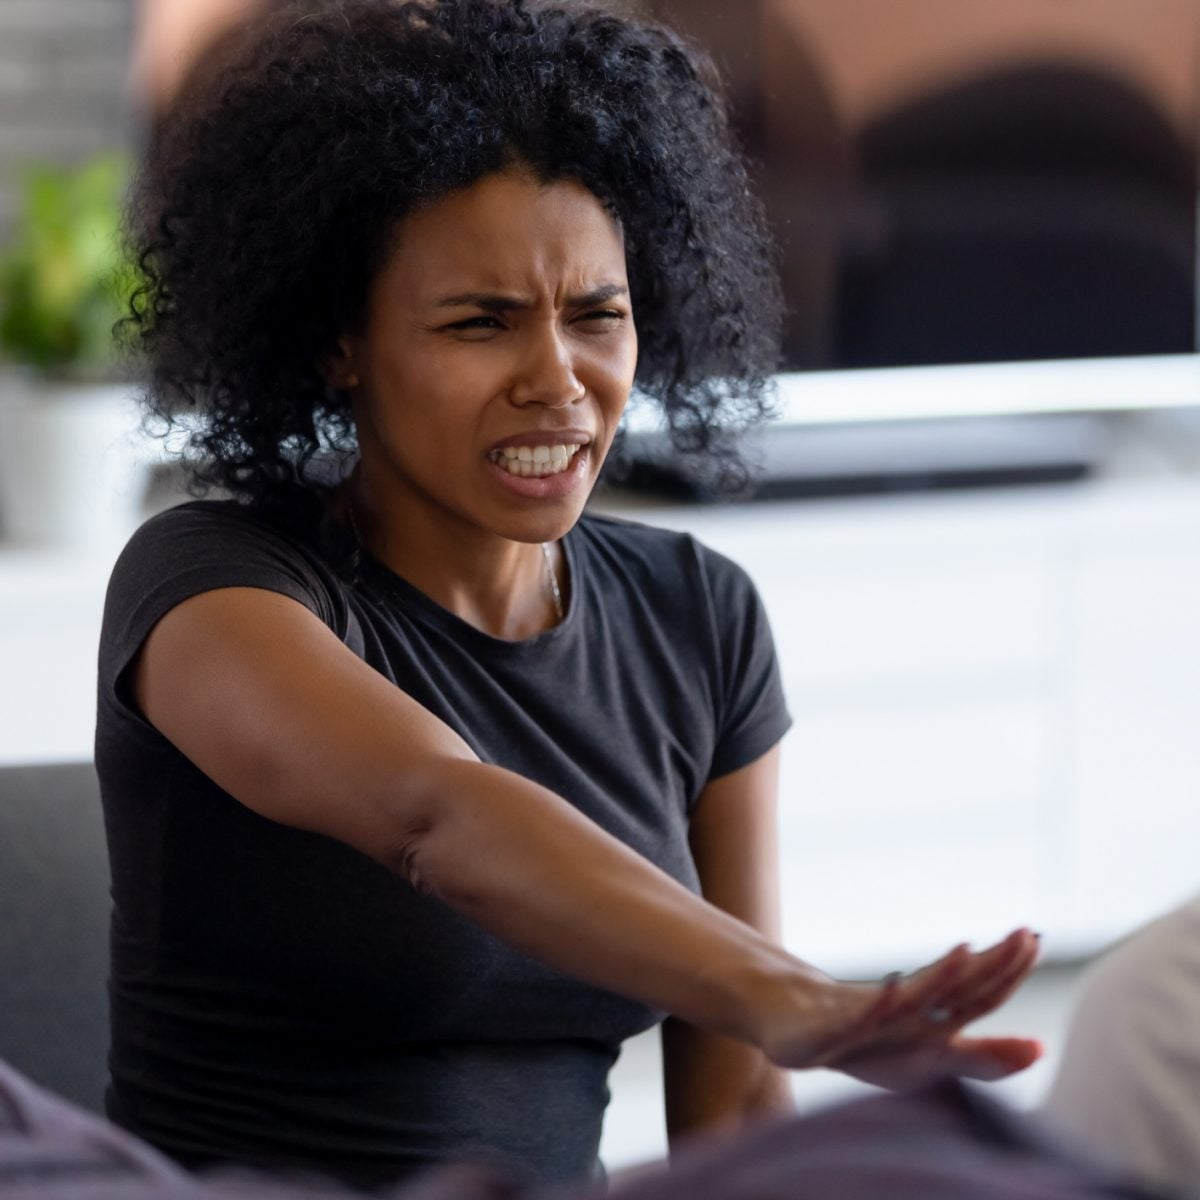 Black Women And Problematic Men